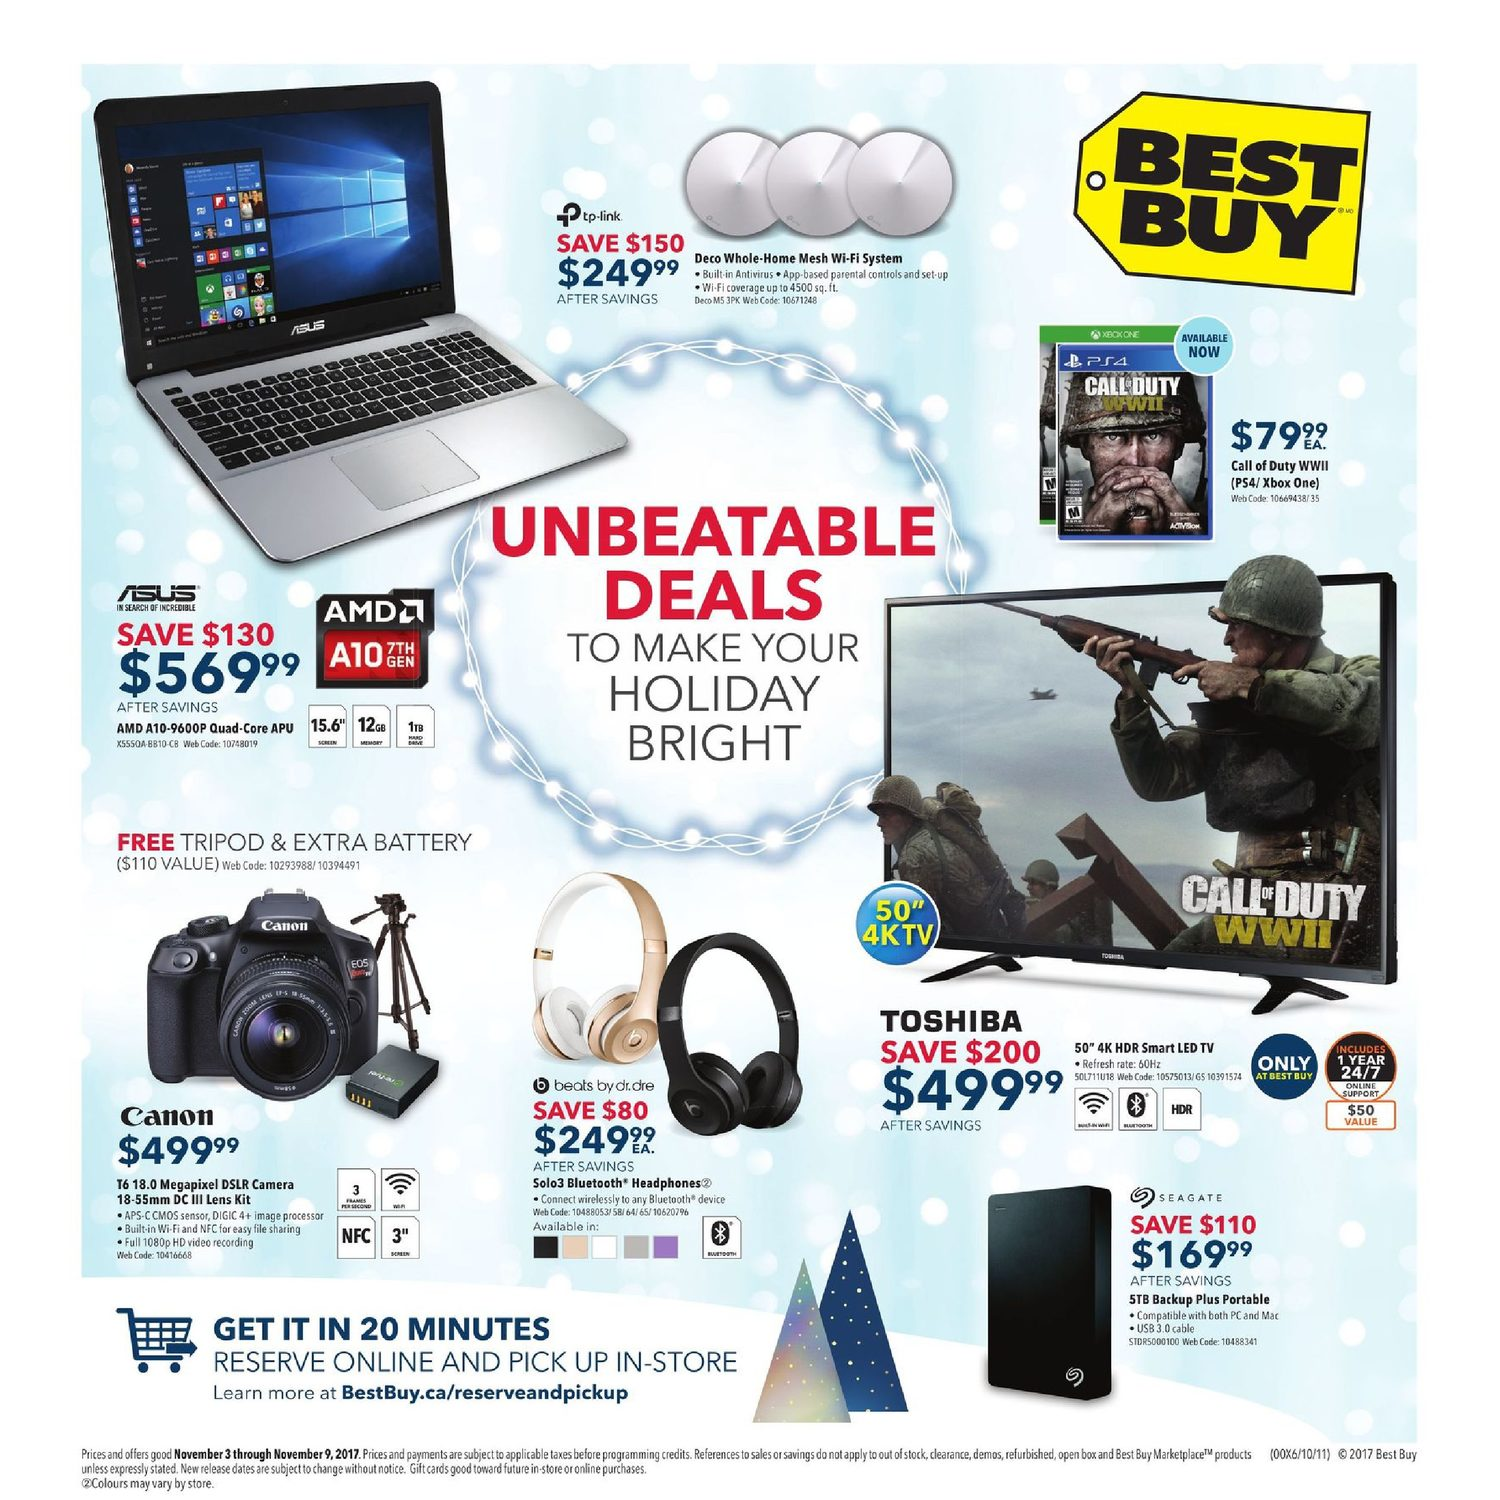 Best buy weekly flyer weekly unbeatable deals nov 3 9 best buy weekly flyer weekly unbeatable deals nov 3 9 redflagdeals fandeluxe Gallery